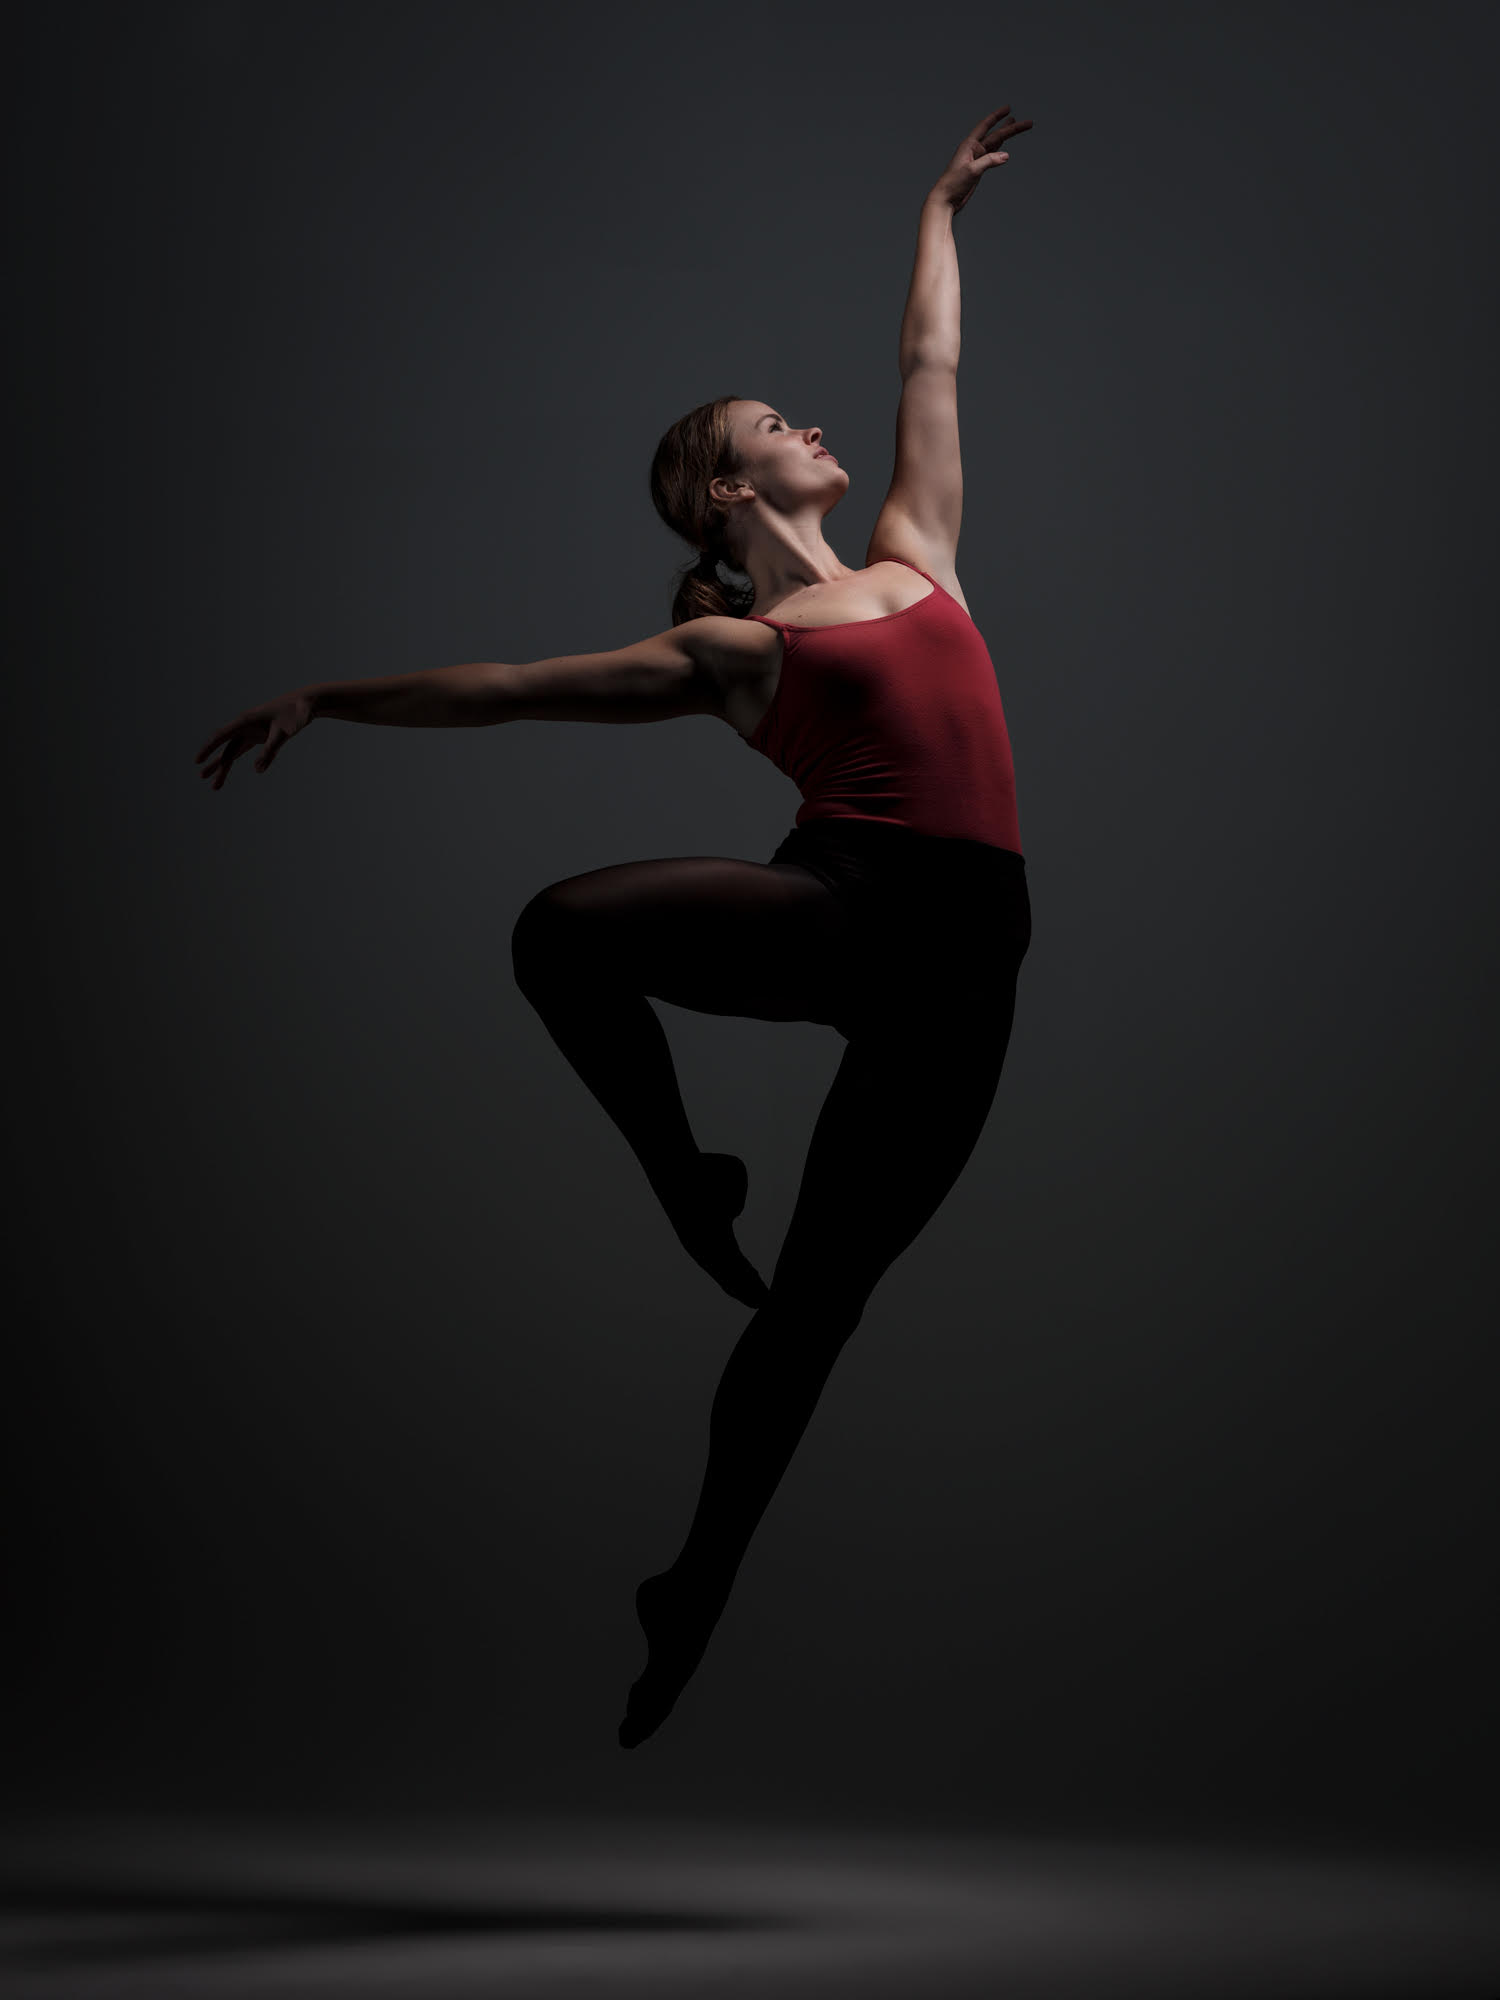 foto: © Ferry Knijn - danseres in studio